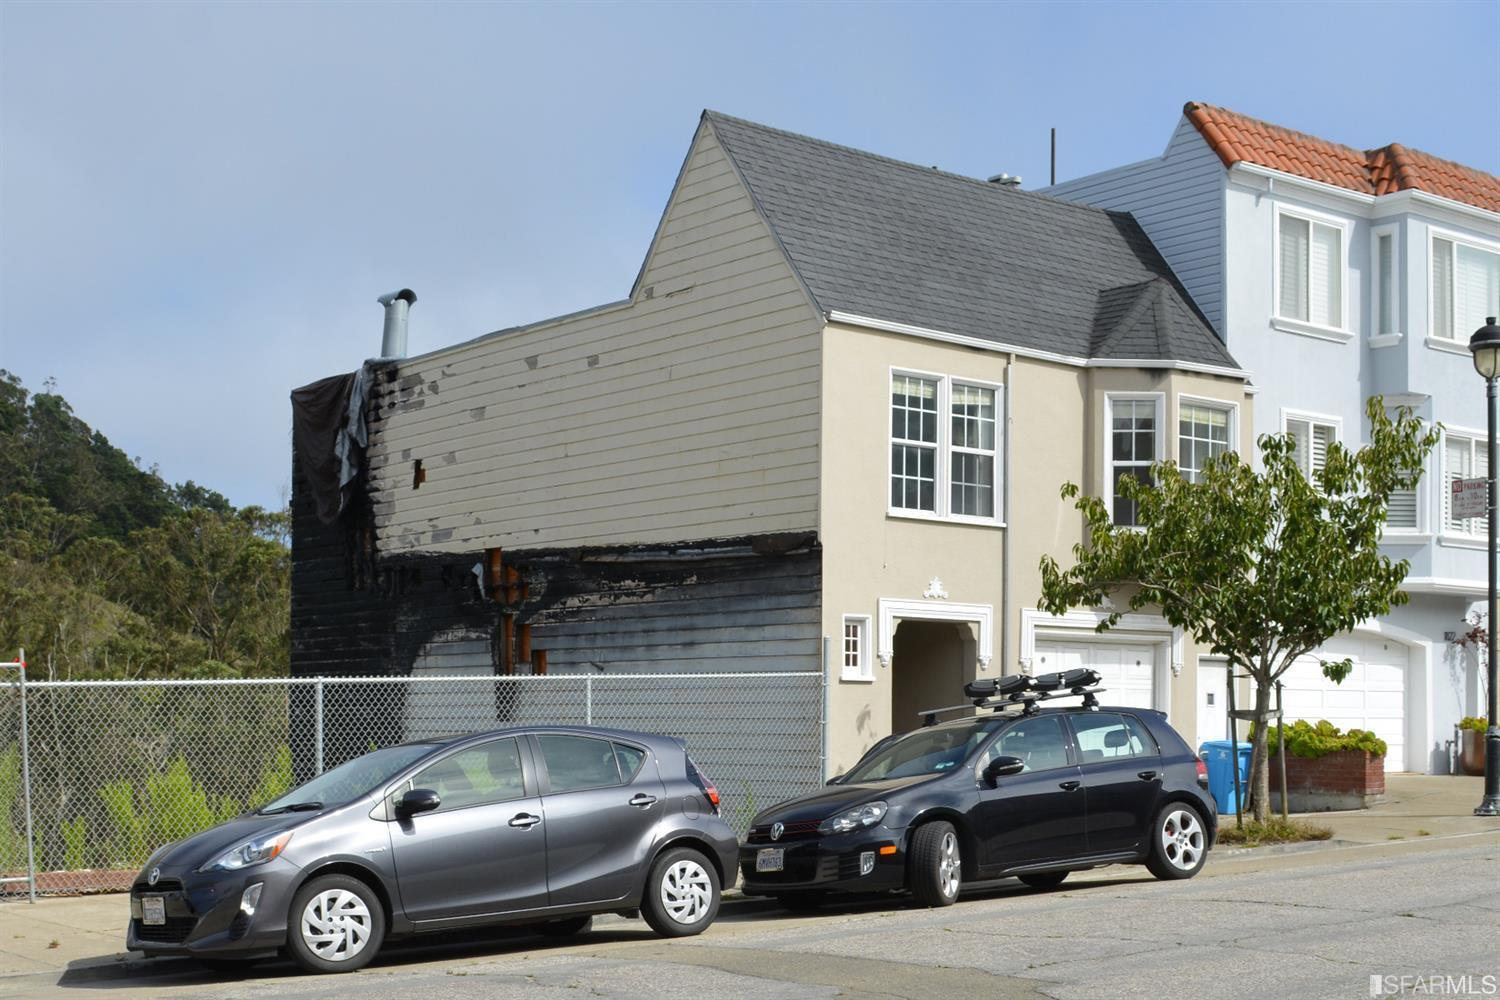 Fire Damaged Home In San Francisco Sells For $602,000 Over Asking